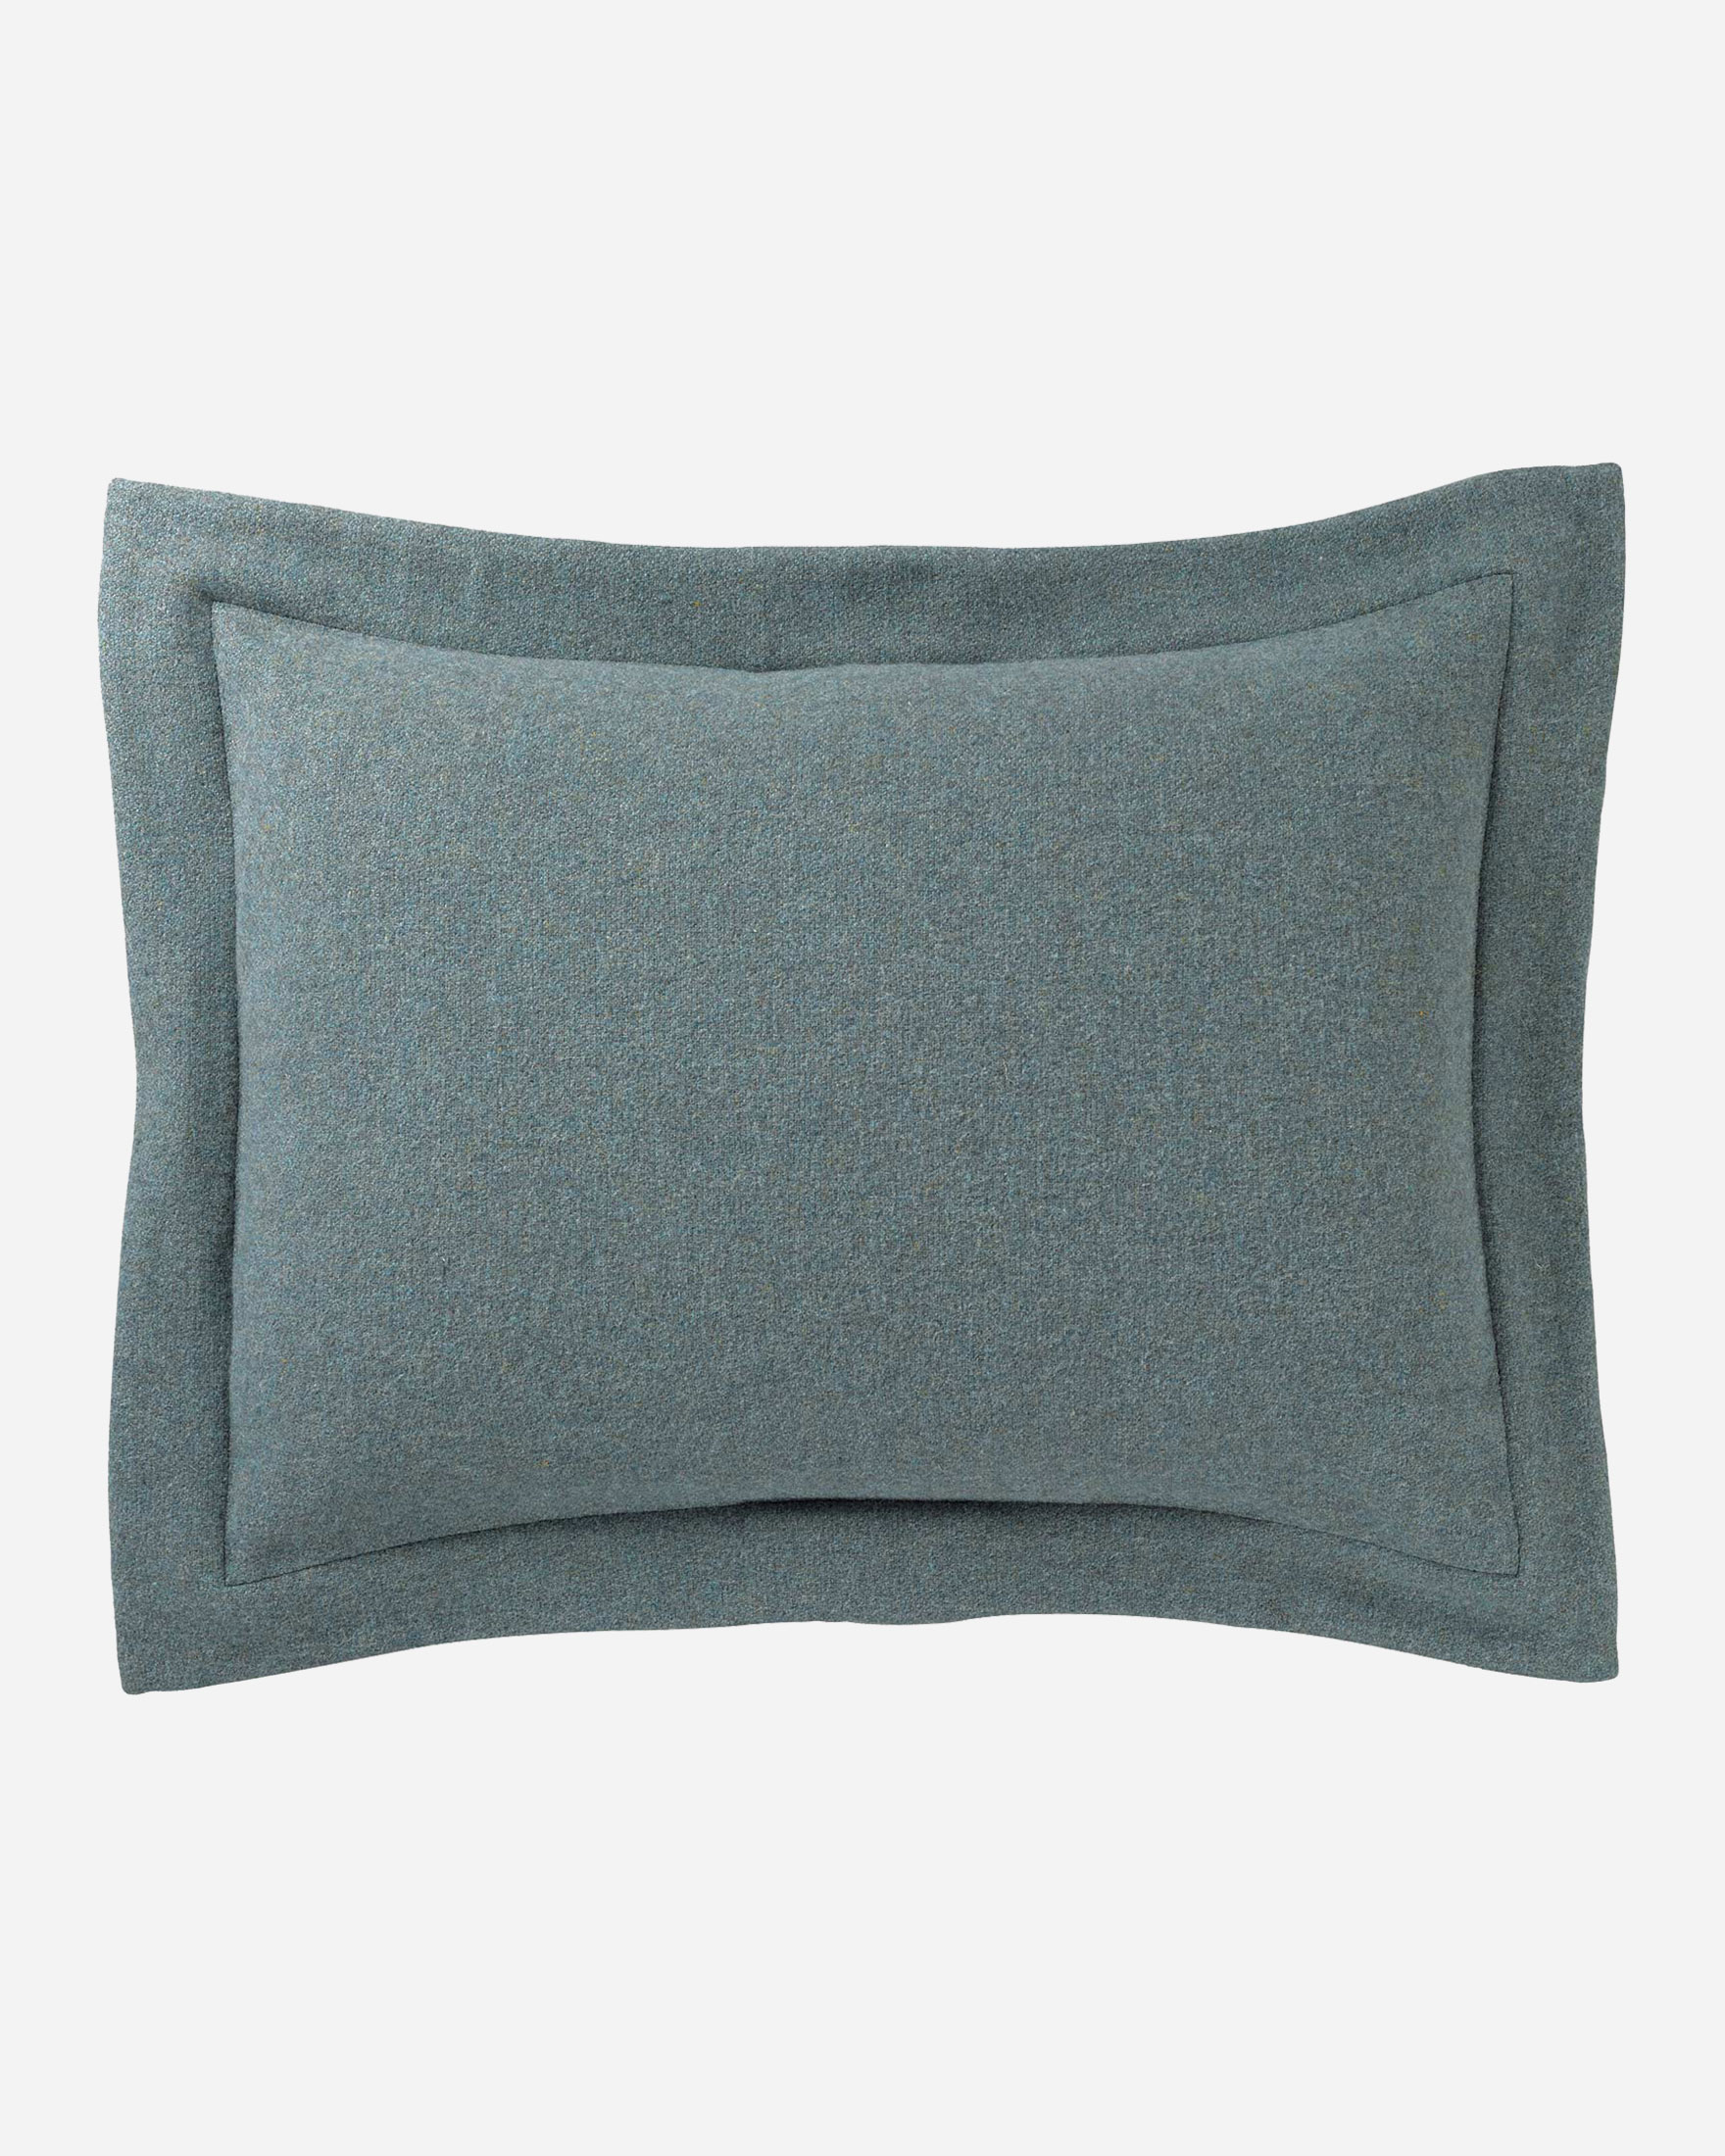 ECO-WISE WOOL EASY-CARE SHAM IN SHALE BLUE